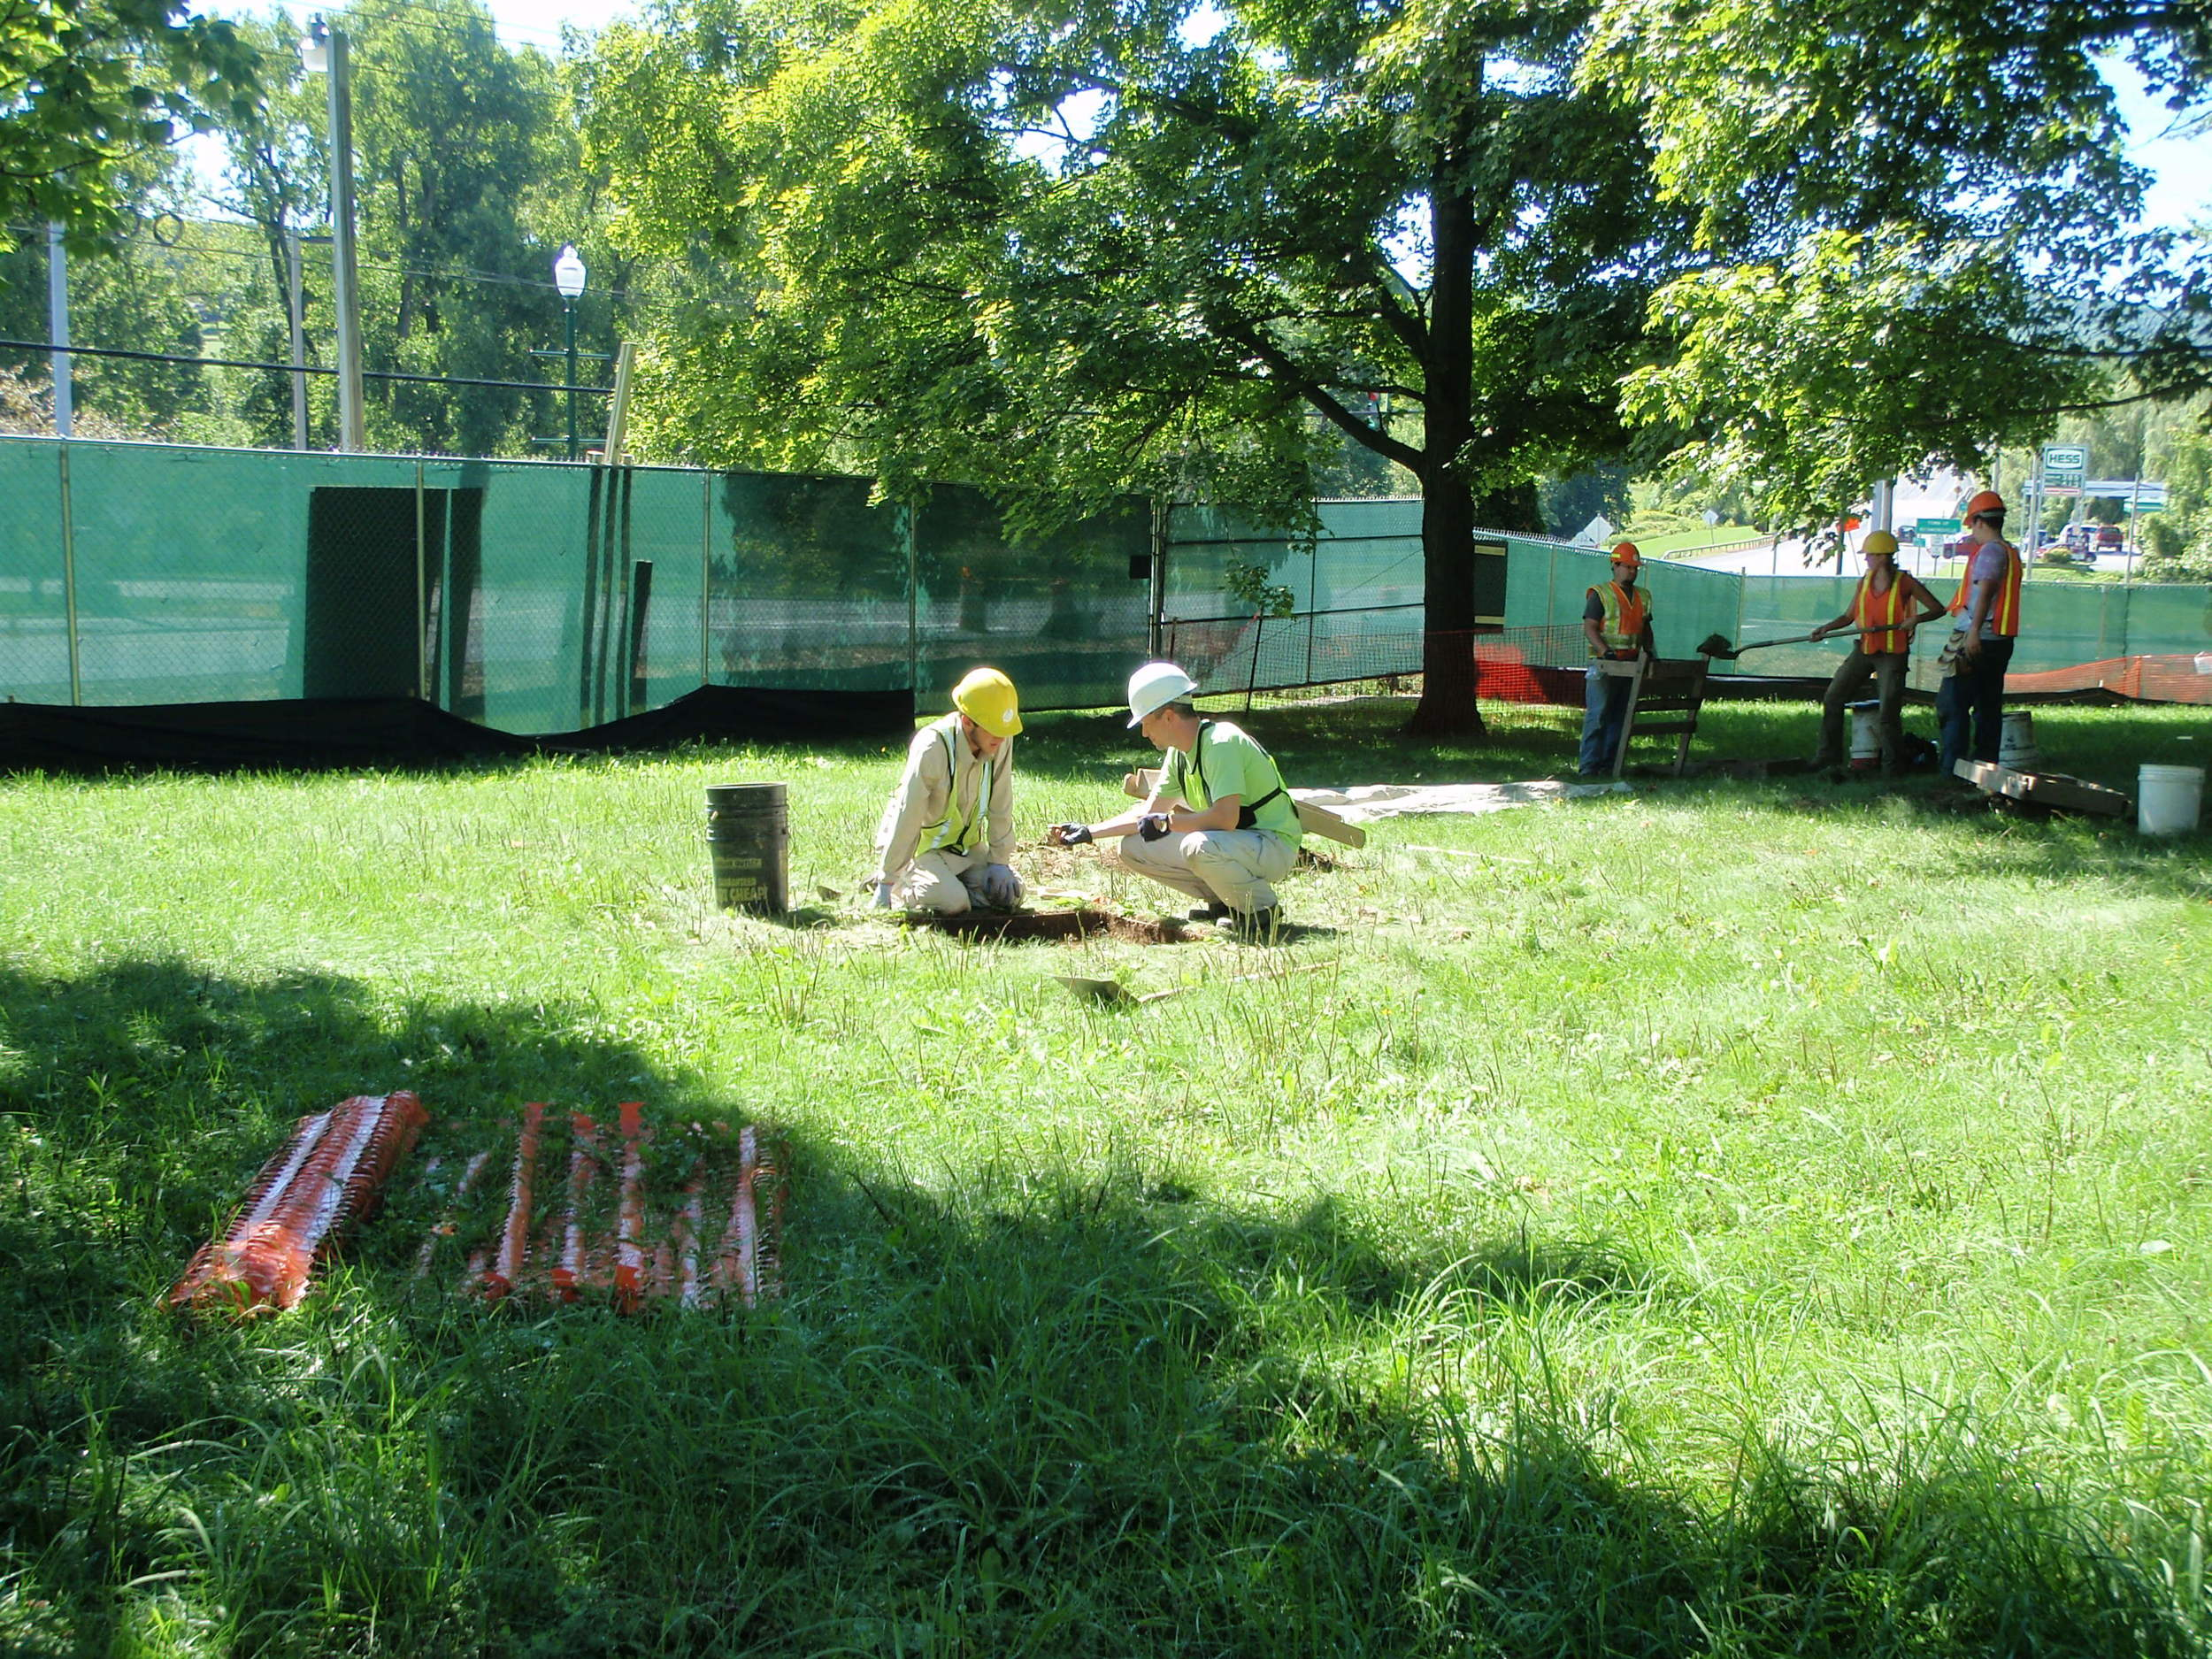 Excavation in the Cobleskill, Schoharie County